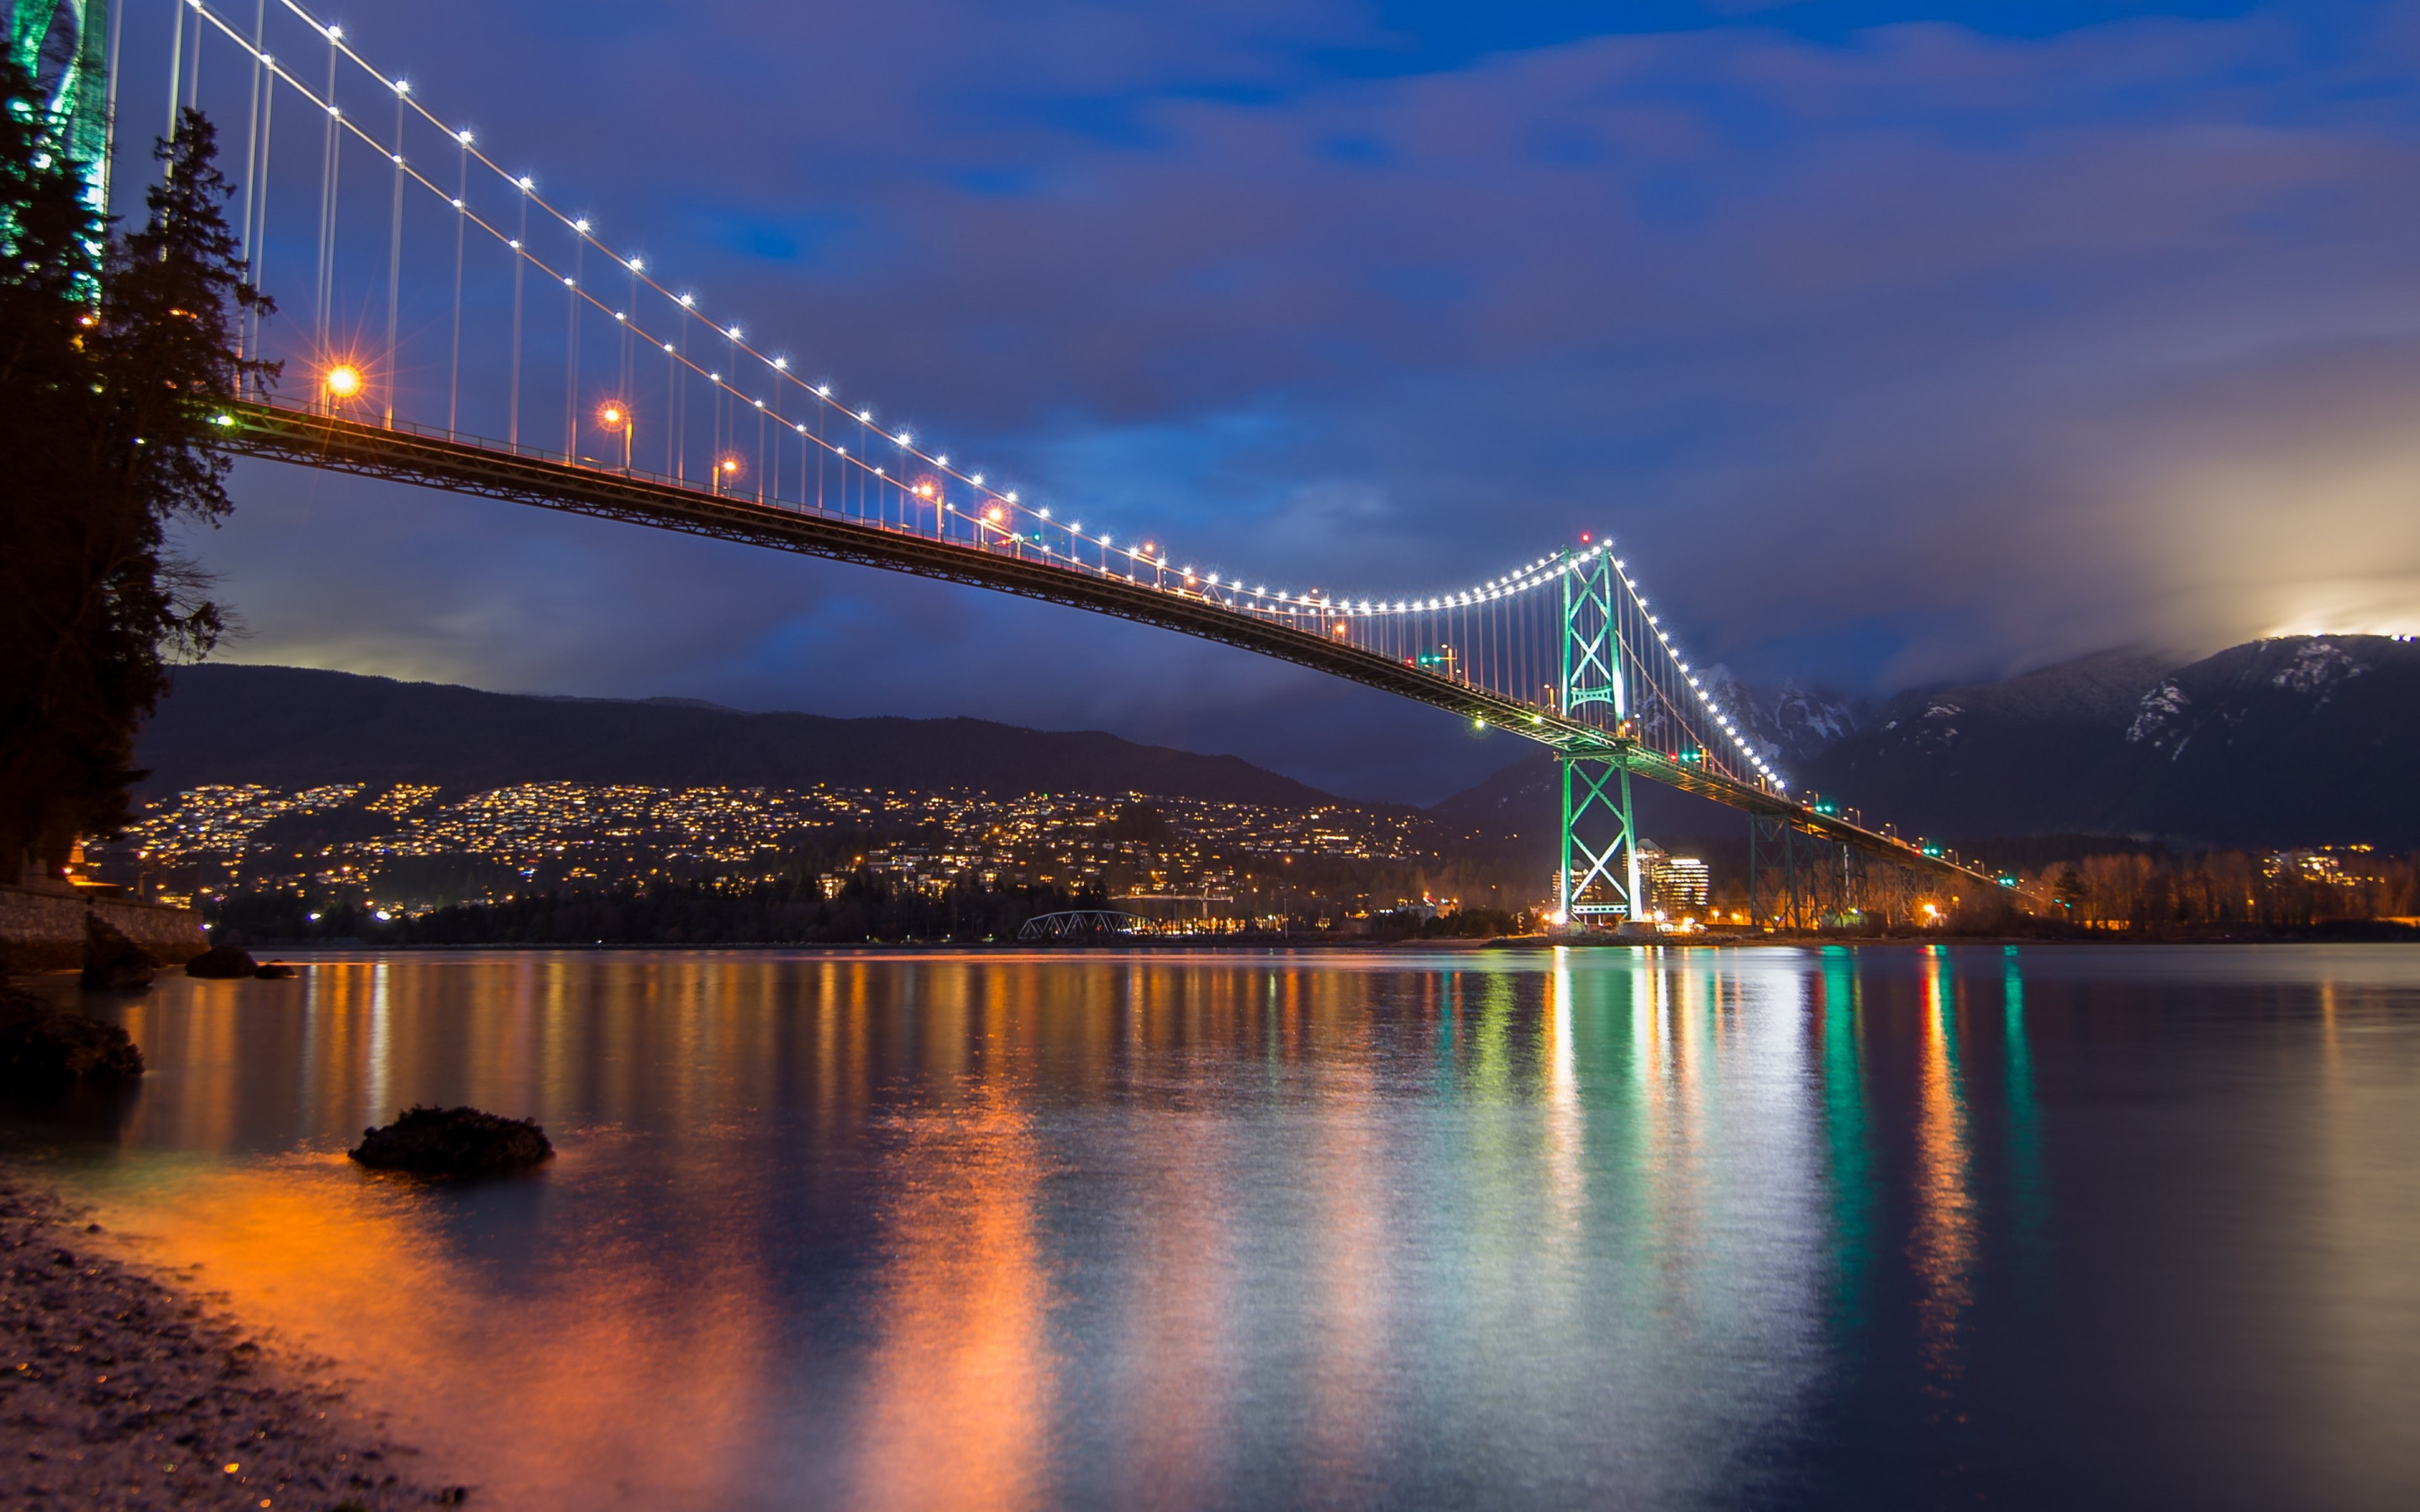 Lions Gate Bridge, Burrard Inlet, British Columbia wallpaper 2880x1800